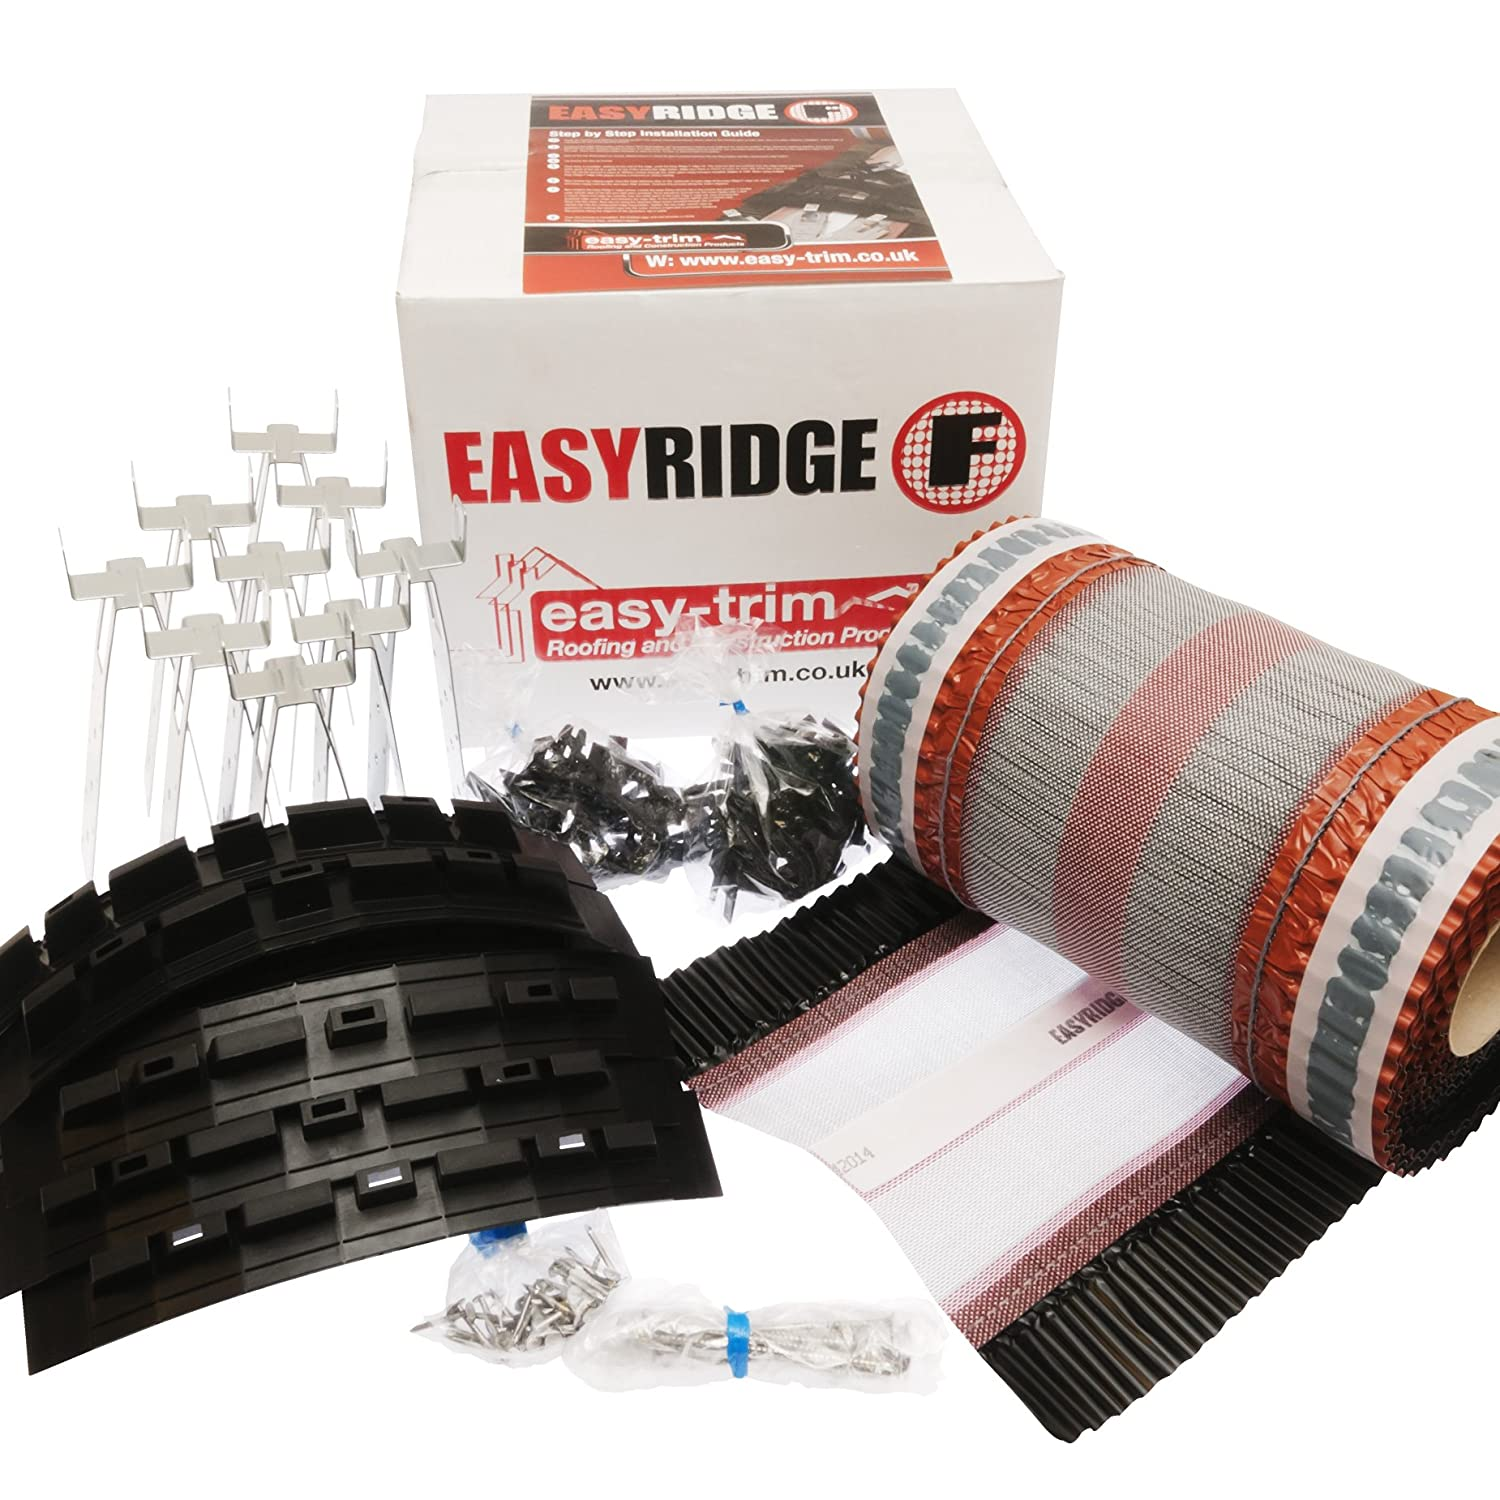 Black Easy Ridge Universal 6 Metre 'Dry Fix' Kit Mortar Free Ridge Tile Fitting System (Available in 2 Colours - Terracotta or Black) Easy-Trim